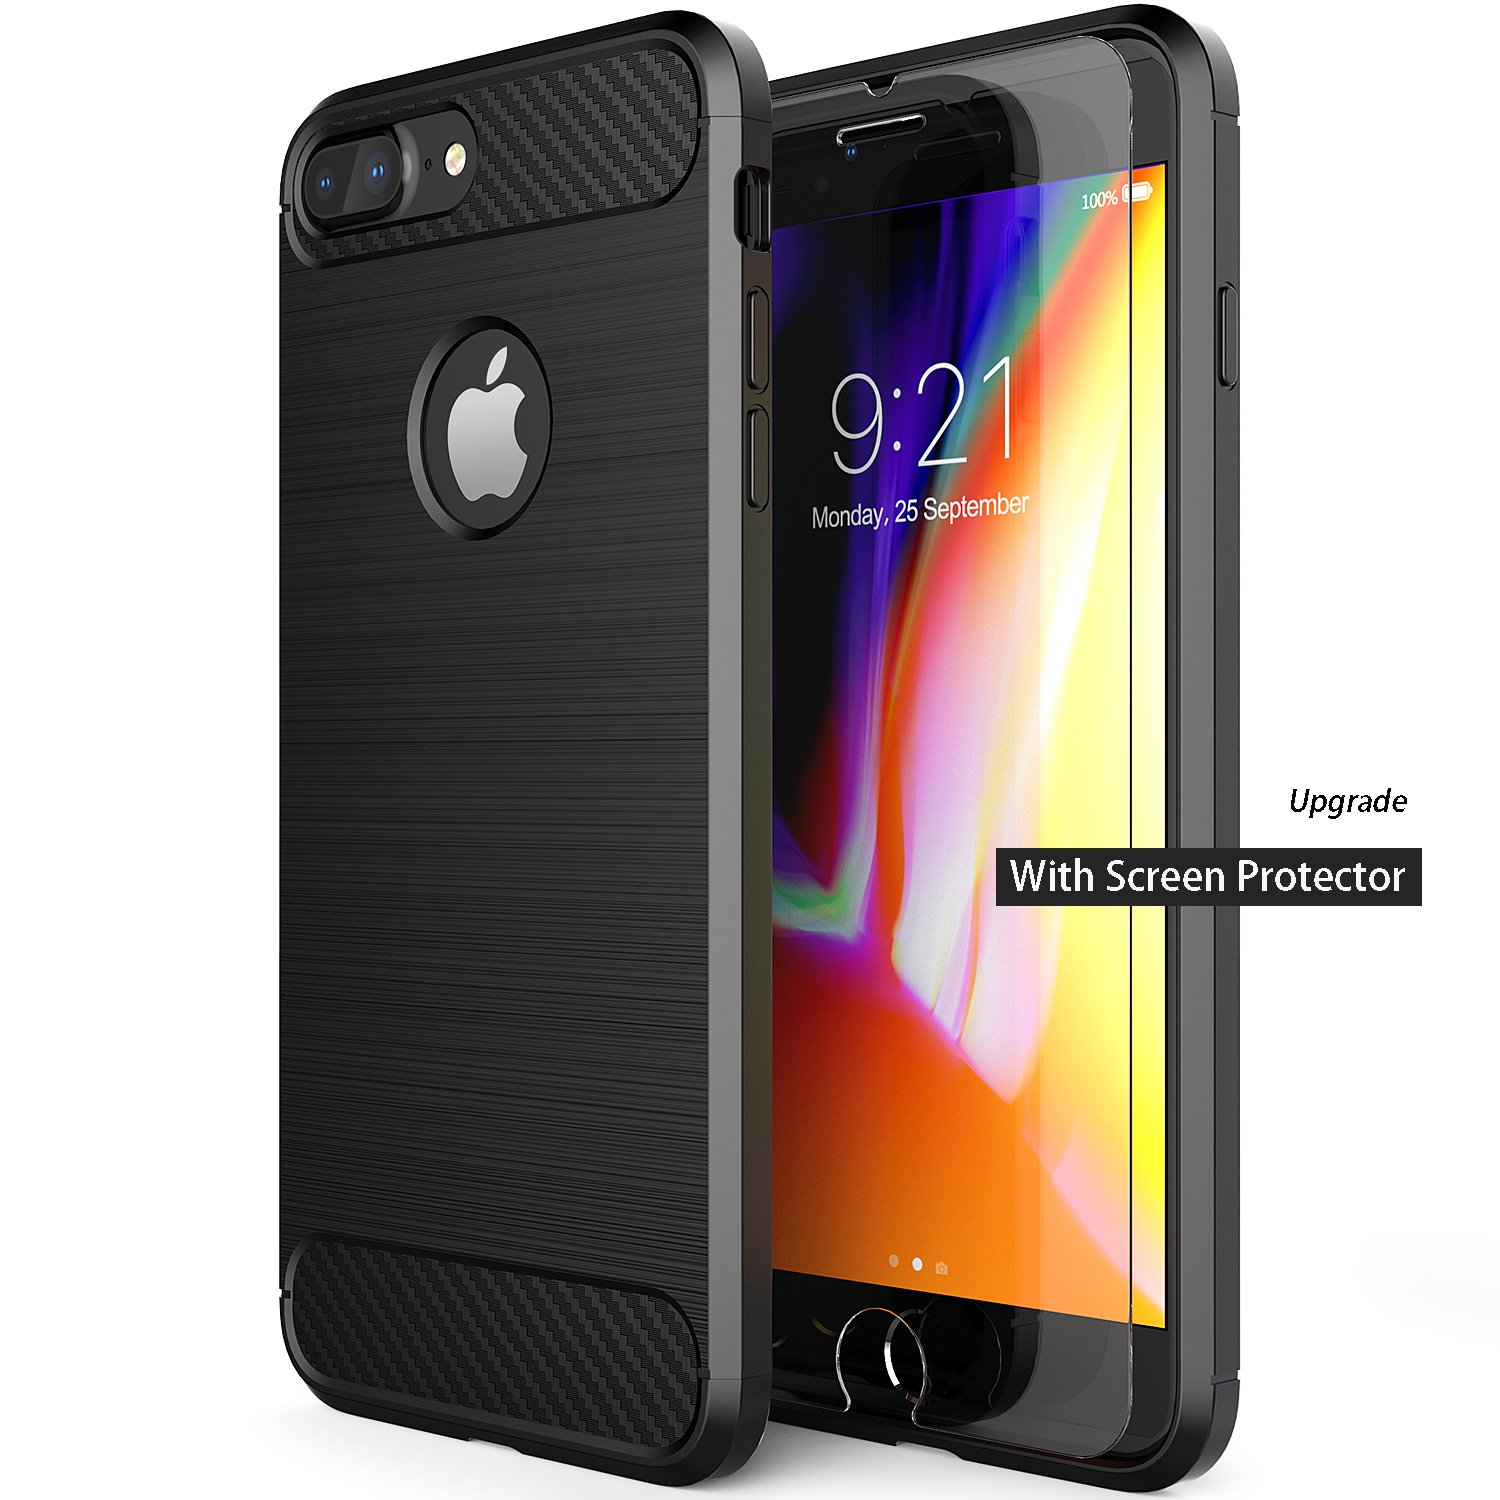 LESEEING iPhone 7 Plus Case iPhone 8 Plus Case, Case for Apple 8 Plus and iPhone 7 Plus Cover Soft TPU Material with Carbon Fiber iPhone 7 Plus Protective Case - Black